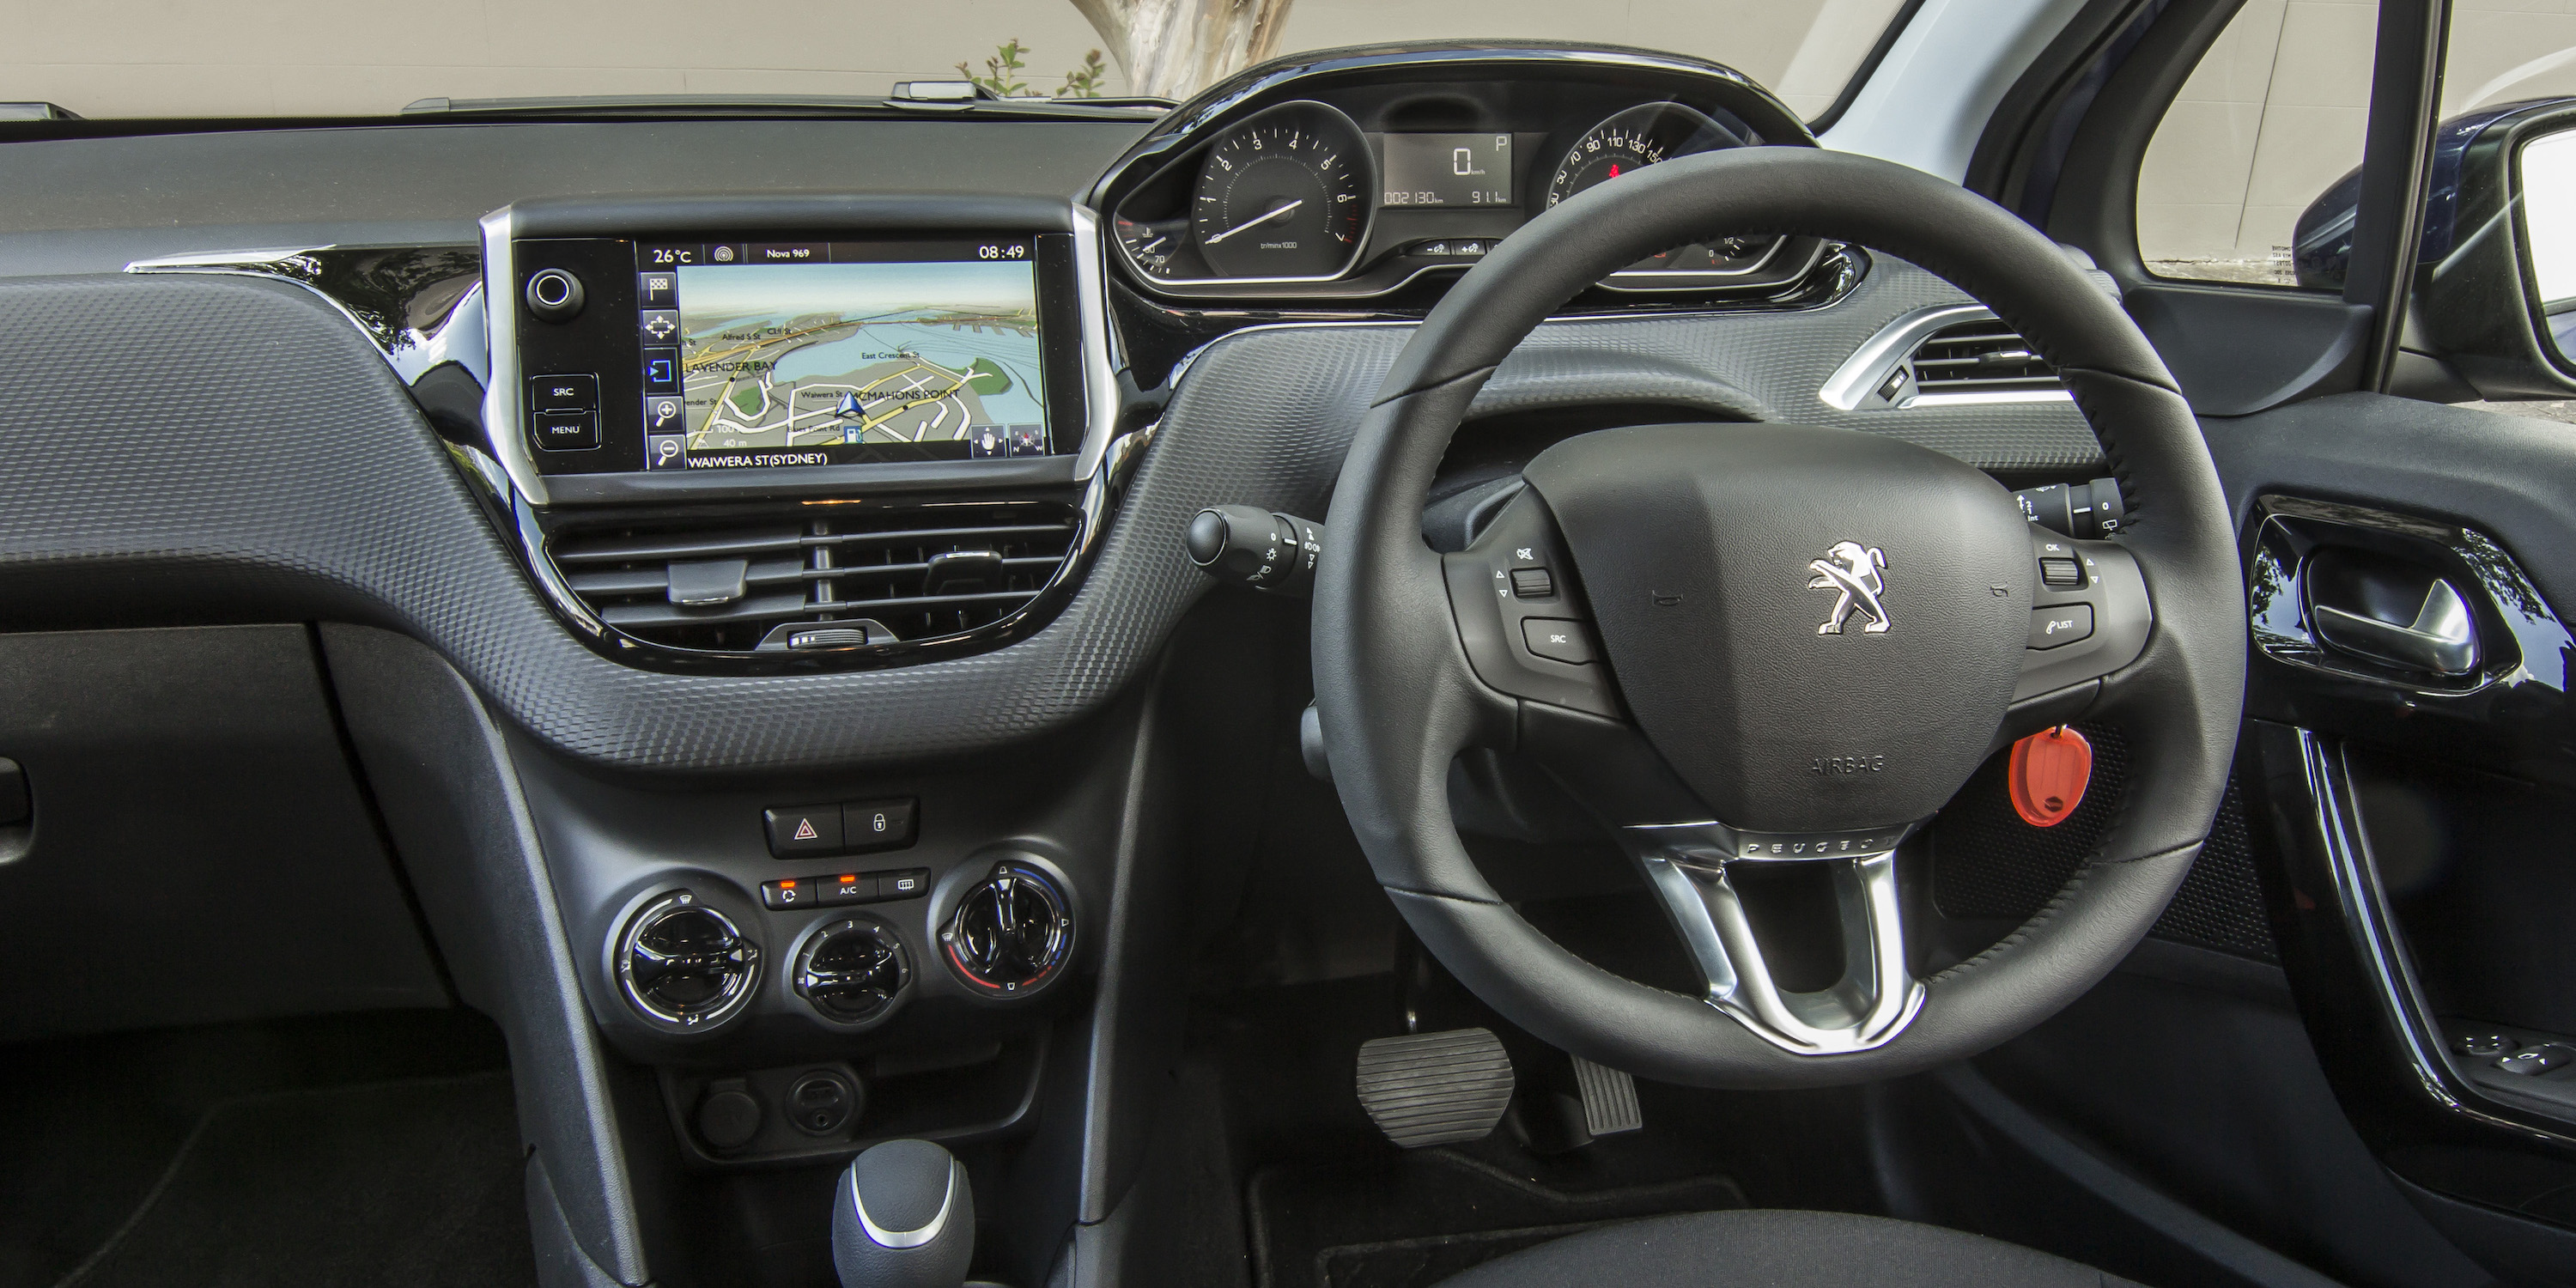 2016 Peugeot 208 Active Cockpit Interior (Photo 2 of 16)